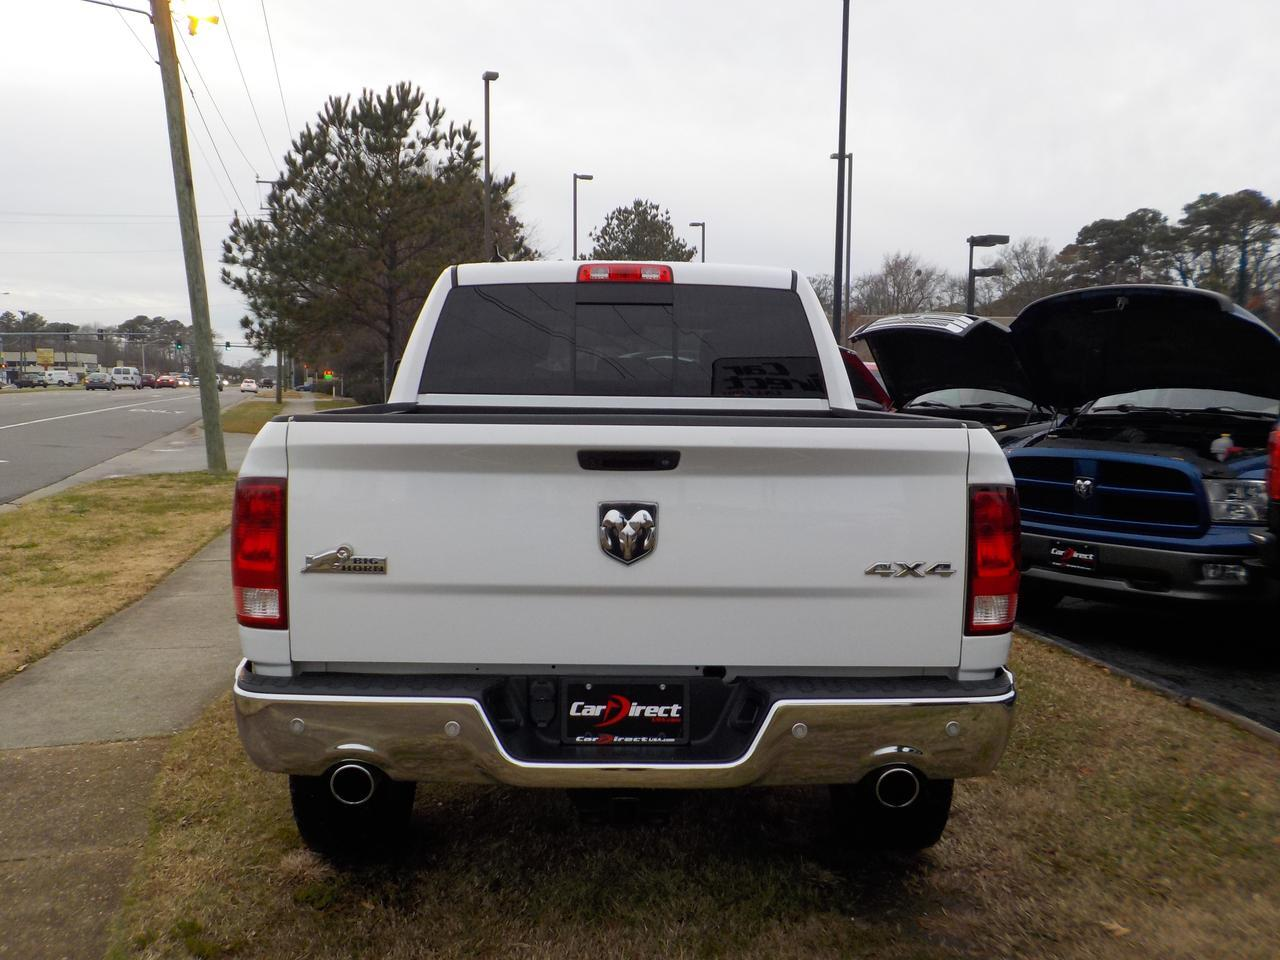 2016 DODGE RAM 1500 BIG HORN CREW CAB 5.7L V8 HEMI 4X4, REMOTE START, TOW PACKAGE, BACKUP CAMERA, PARKING SENSORS! Virginia Beach VA